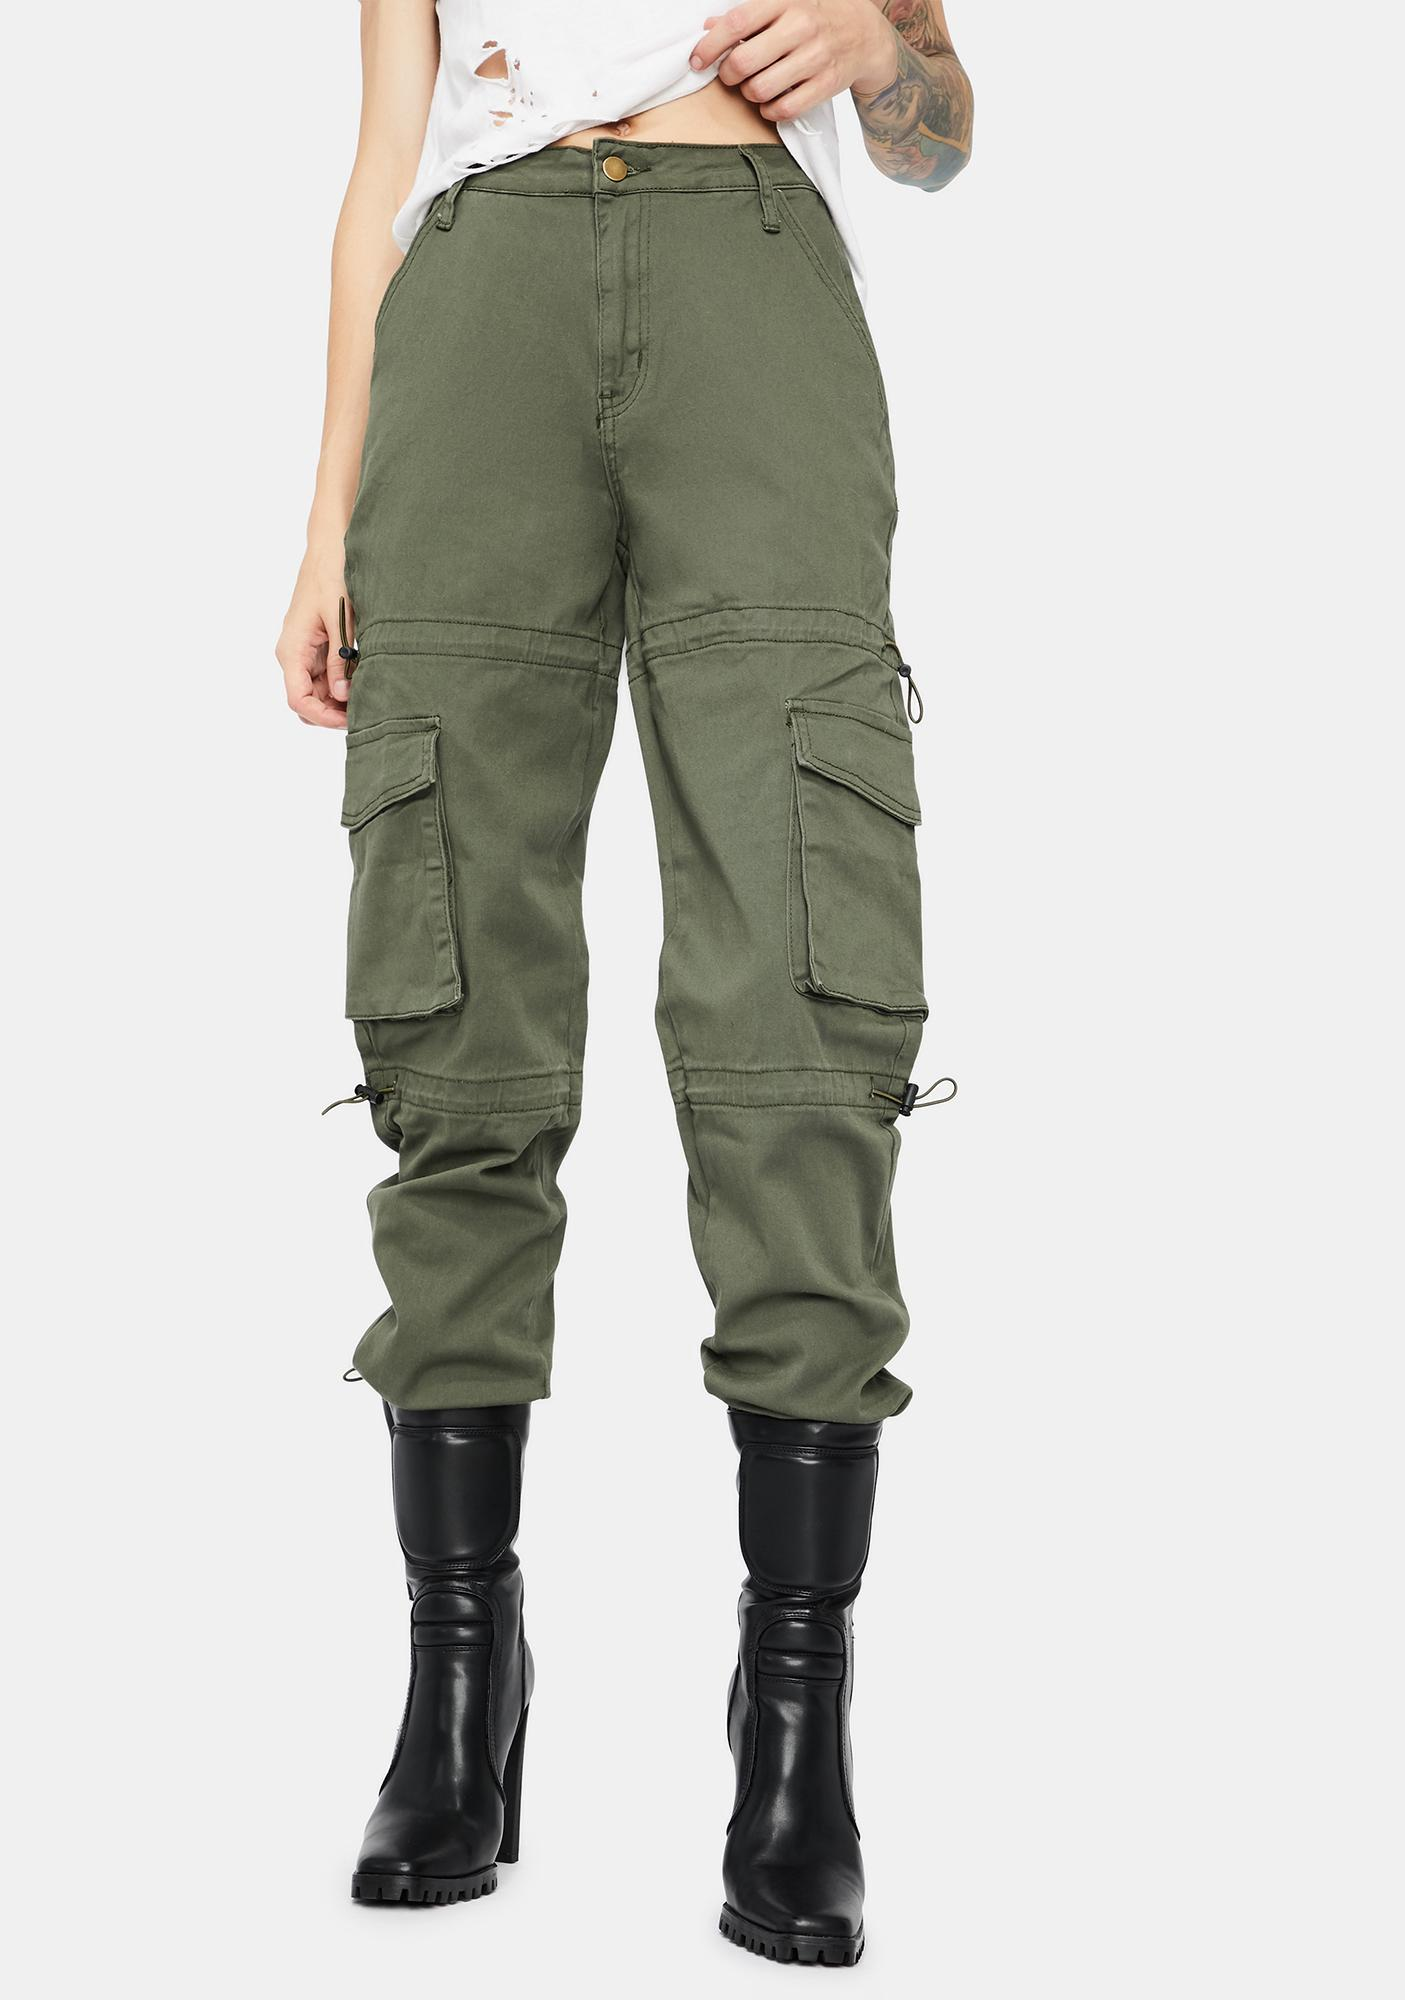 Anything Possible Cargo Joggers